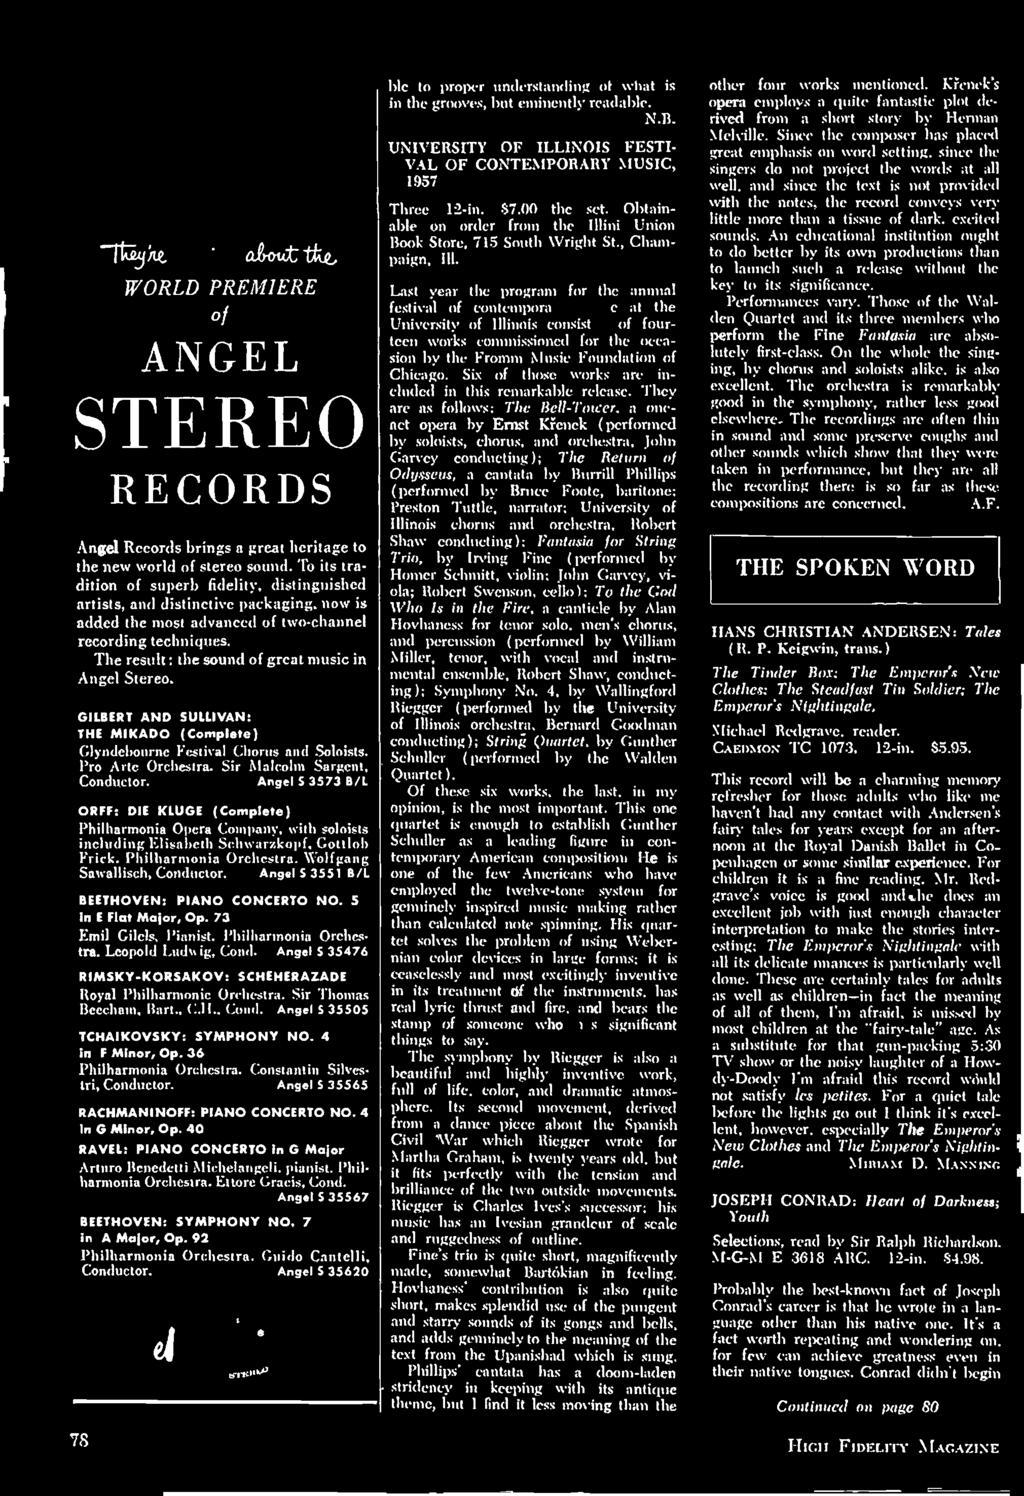 The result: the sound of great music in Angel Stereo. GILBERT AND SULLIVAN: THE MIKADO (Complete) (ayncicbournc Festival Chorus and Soloists. Pro Arte Orchestra. Sir Malcolm Sargent, Conductor.